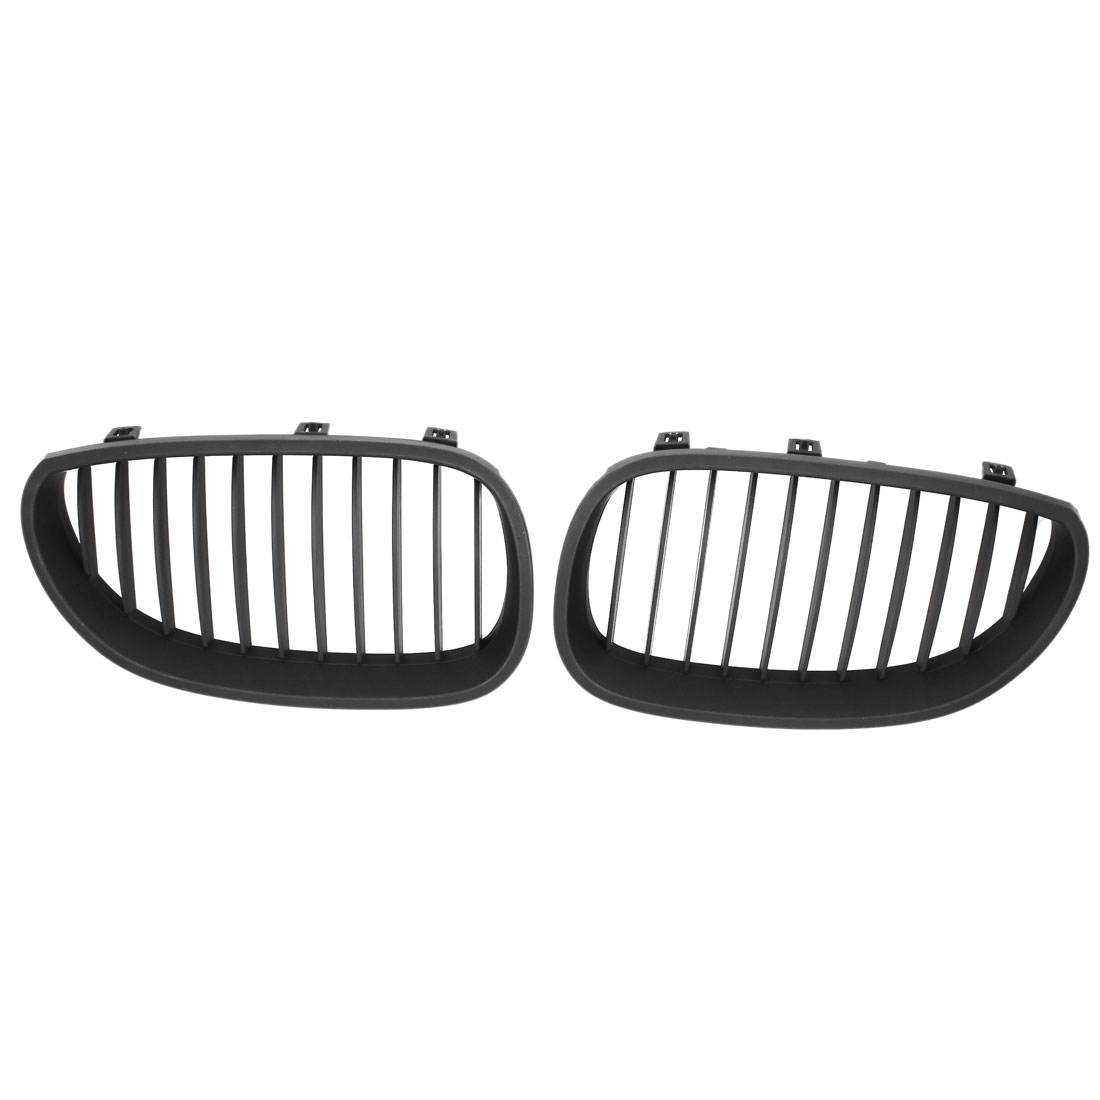 Pair Front Black Wide Decor Kidney Grille Grill for BMW E60 330I 325I 3 Series